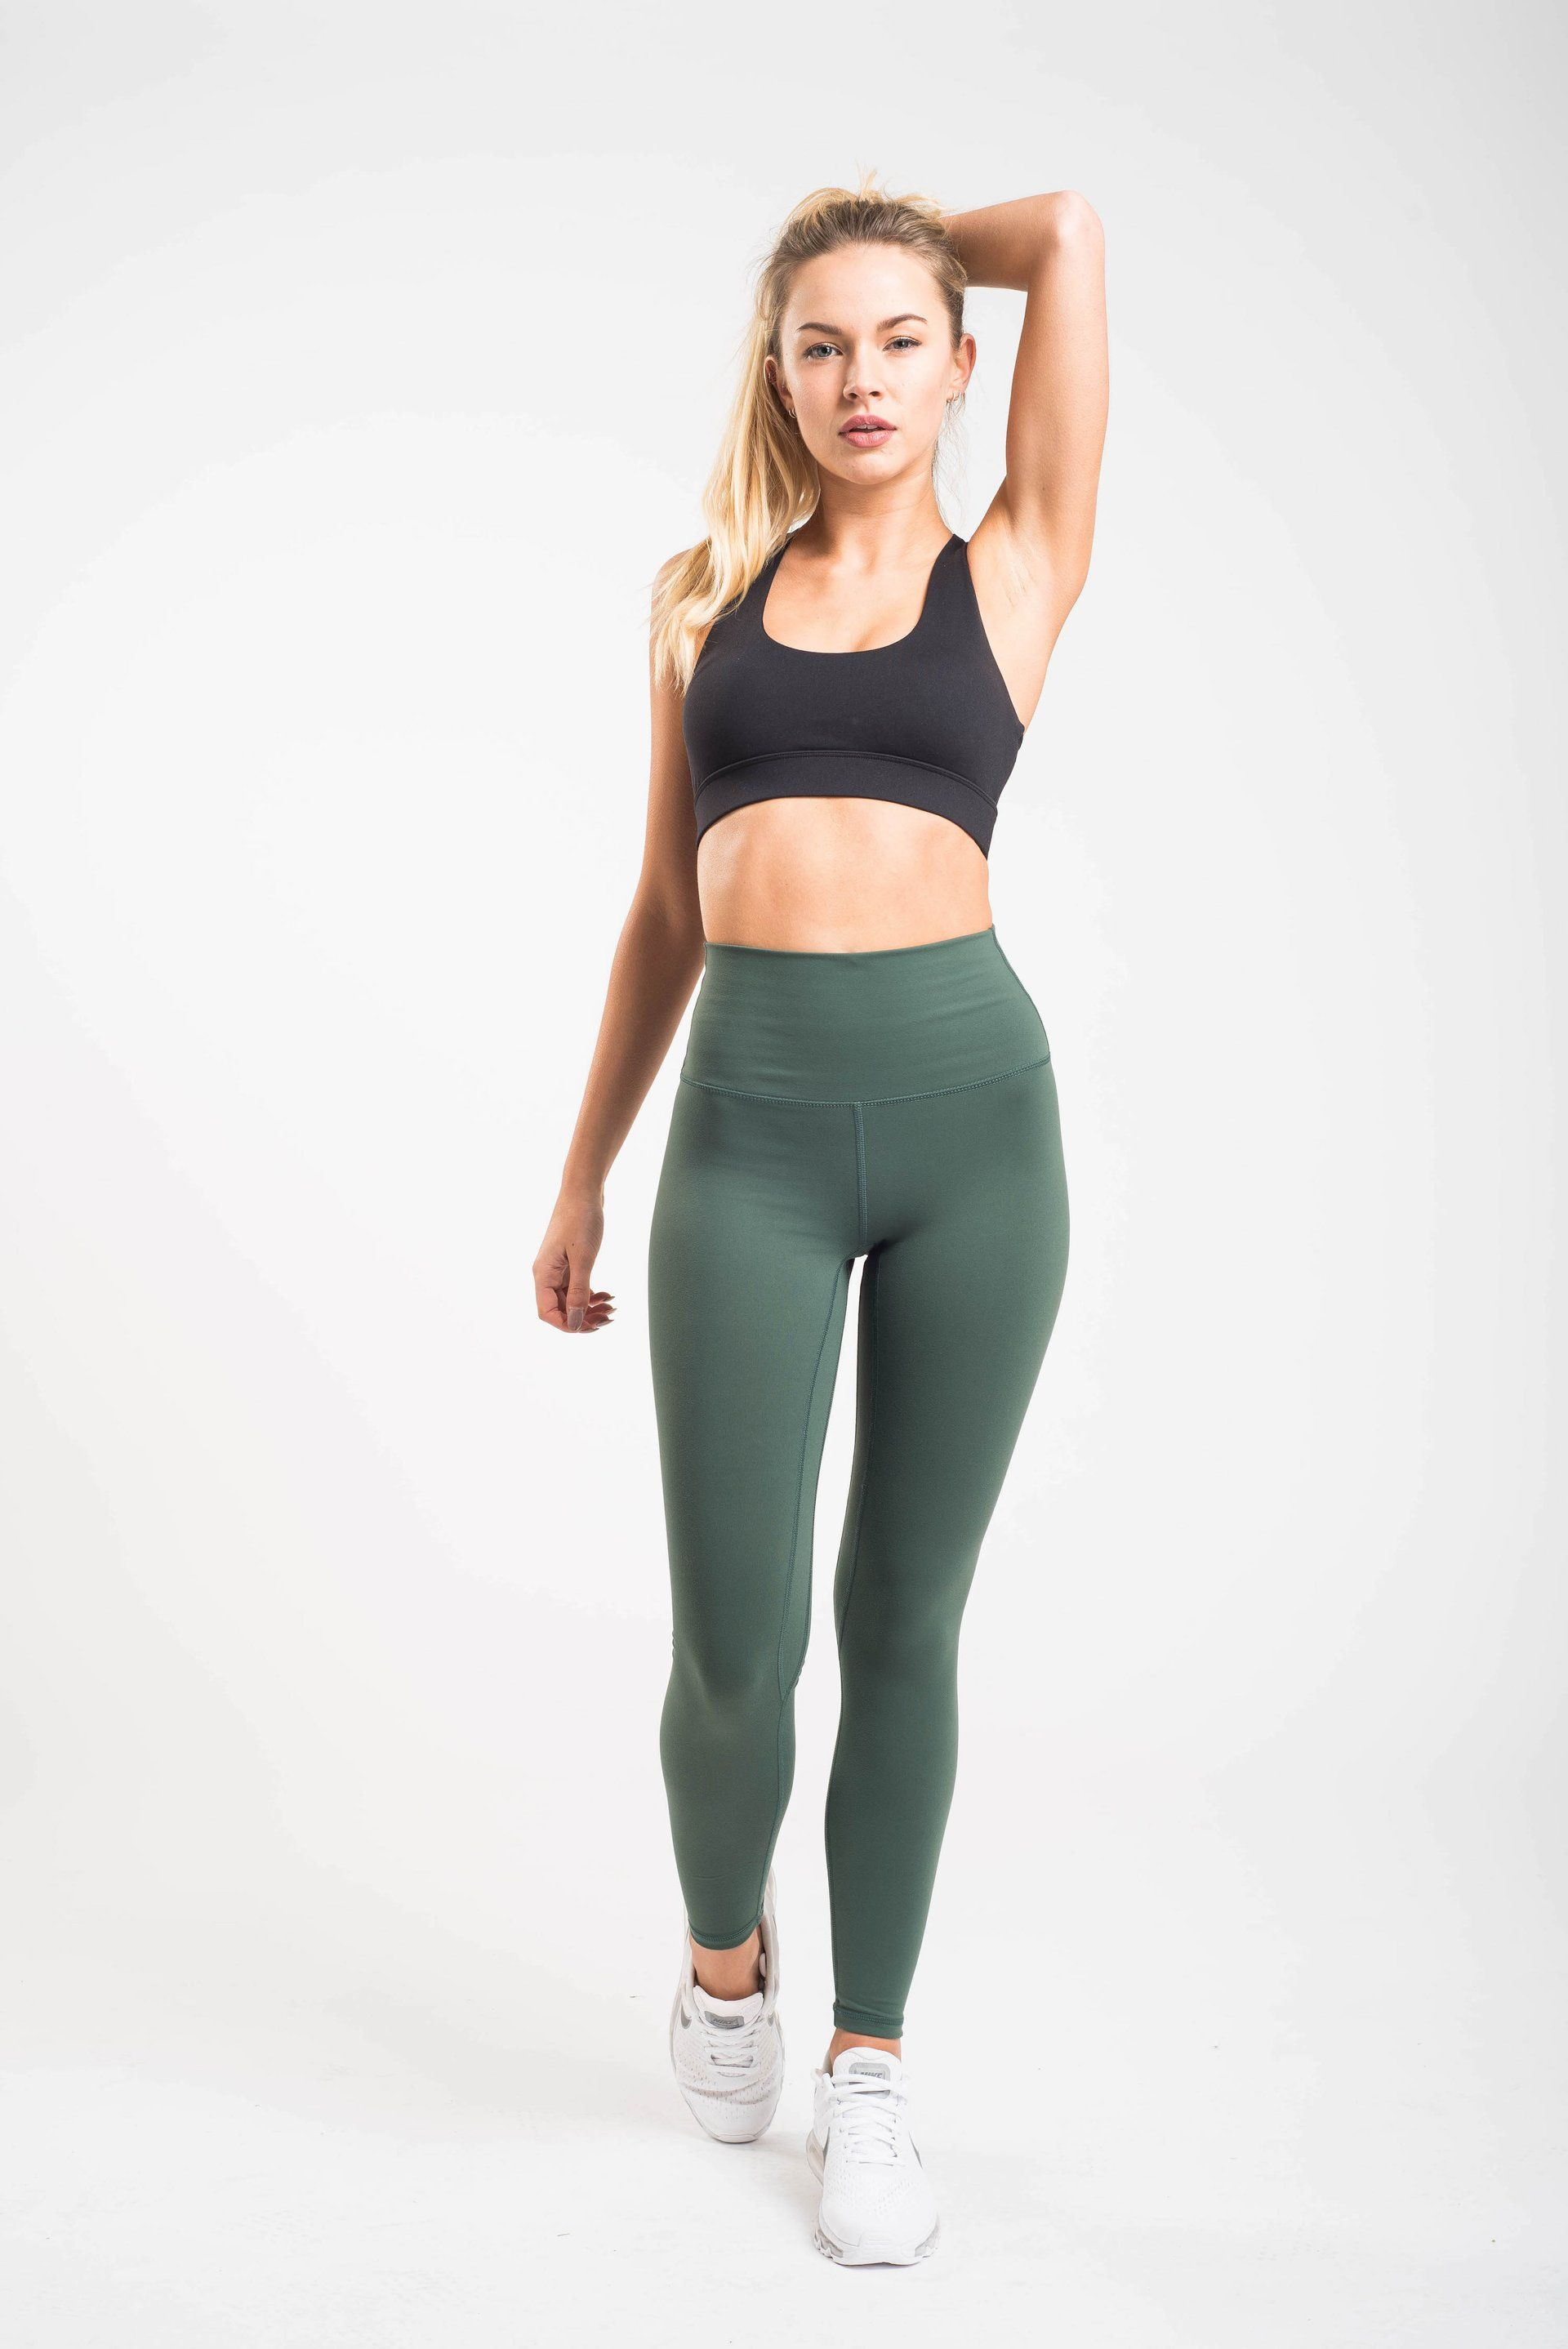 3dcd4852d31aaf Luxe Leggings - Sage Green | Dream Closet in 2019 | Leggings ...